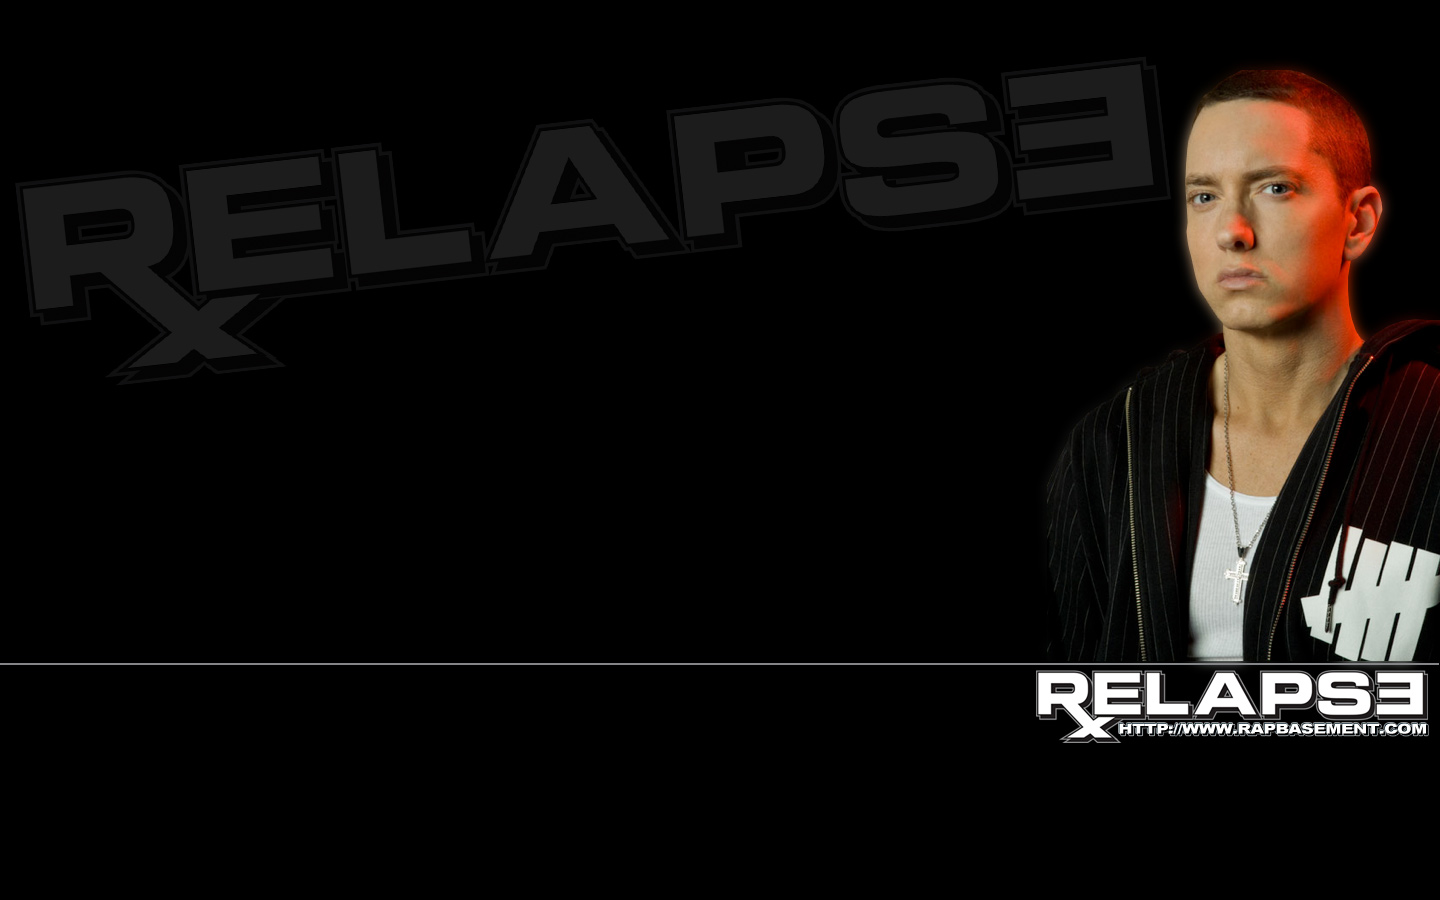 relapse eminem computer - photo #1